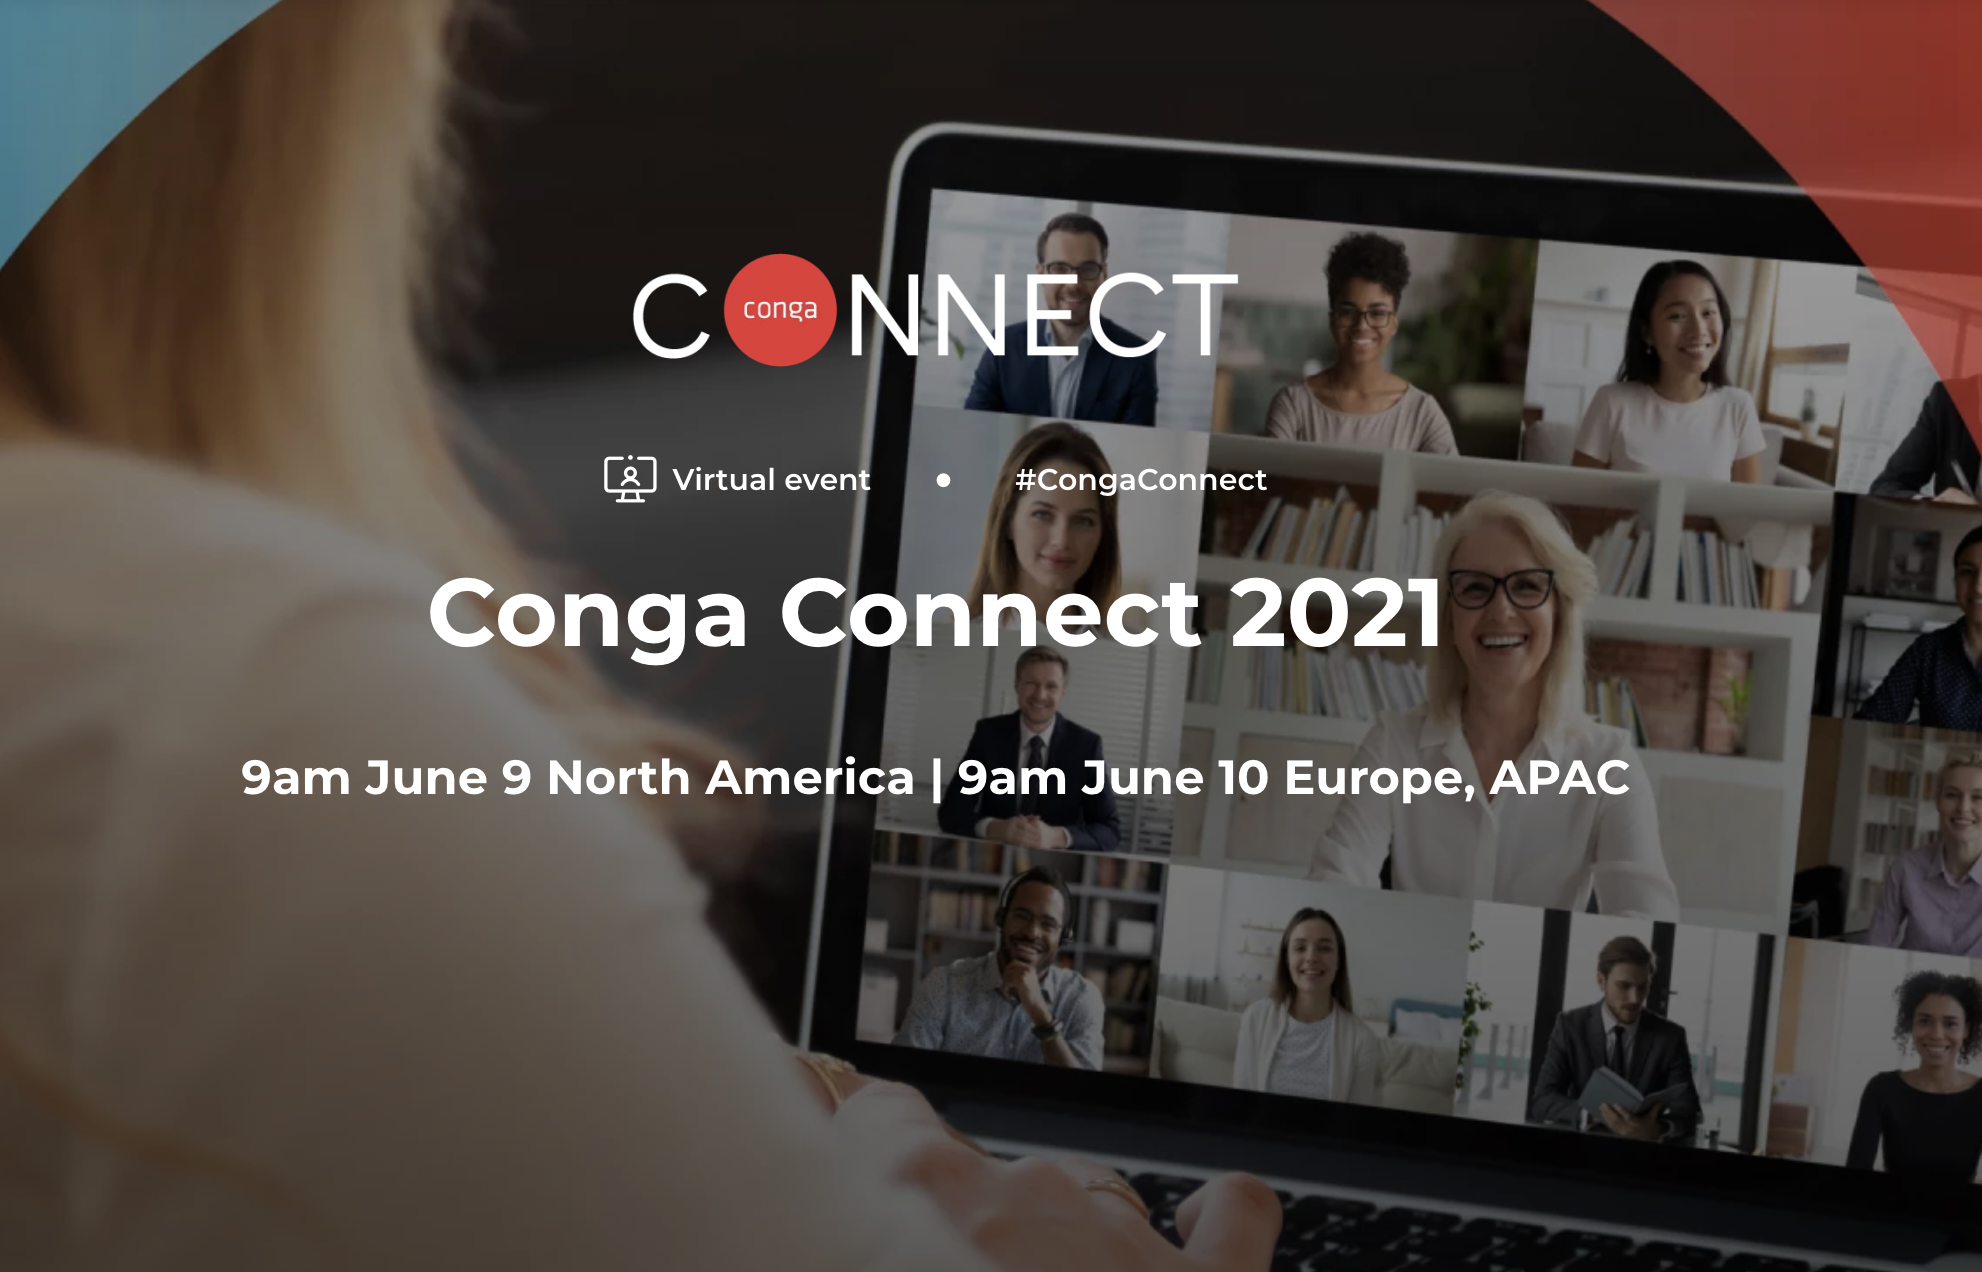 4 Key Takeaways on Customer Success from Conga Connect 2021